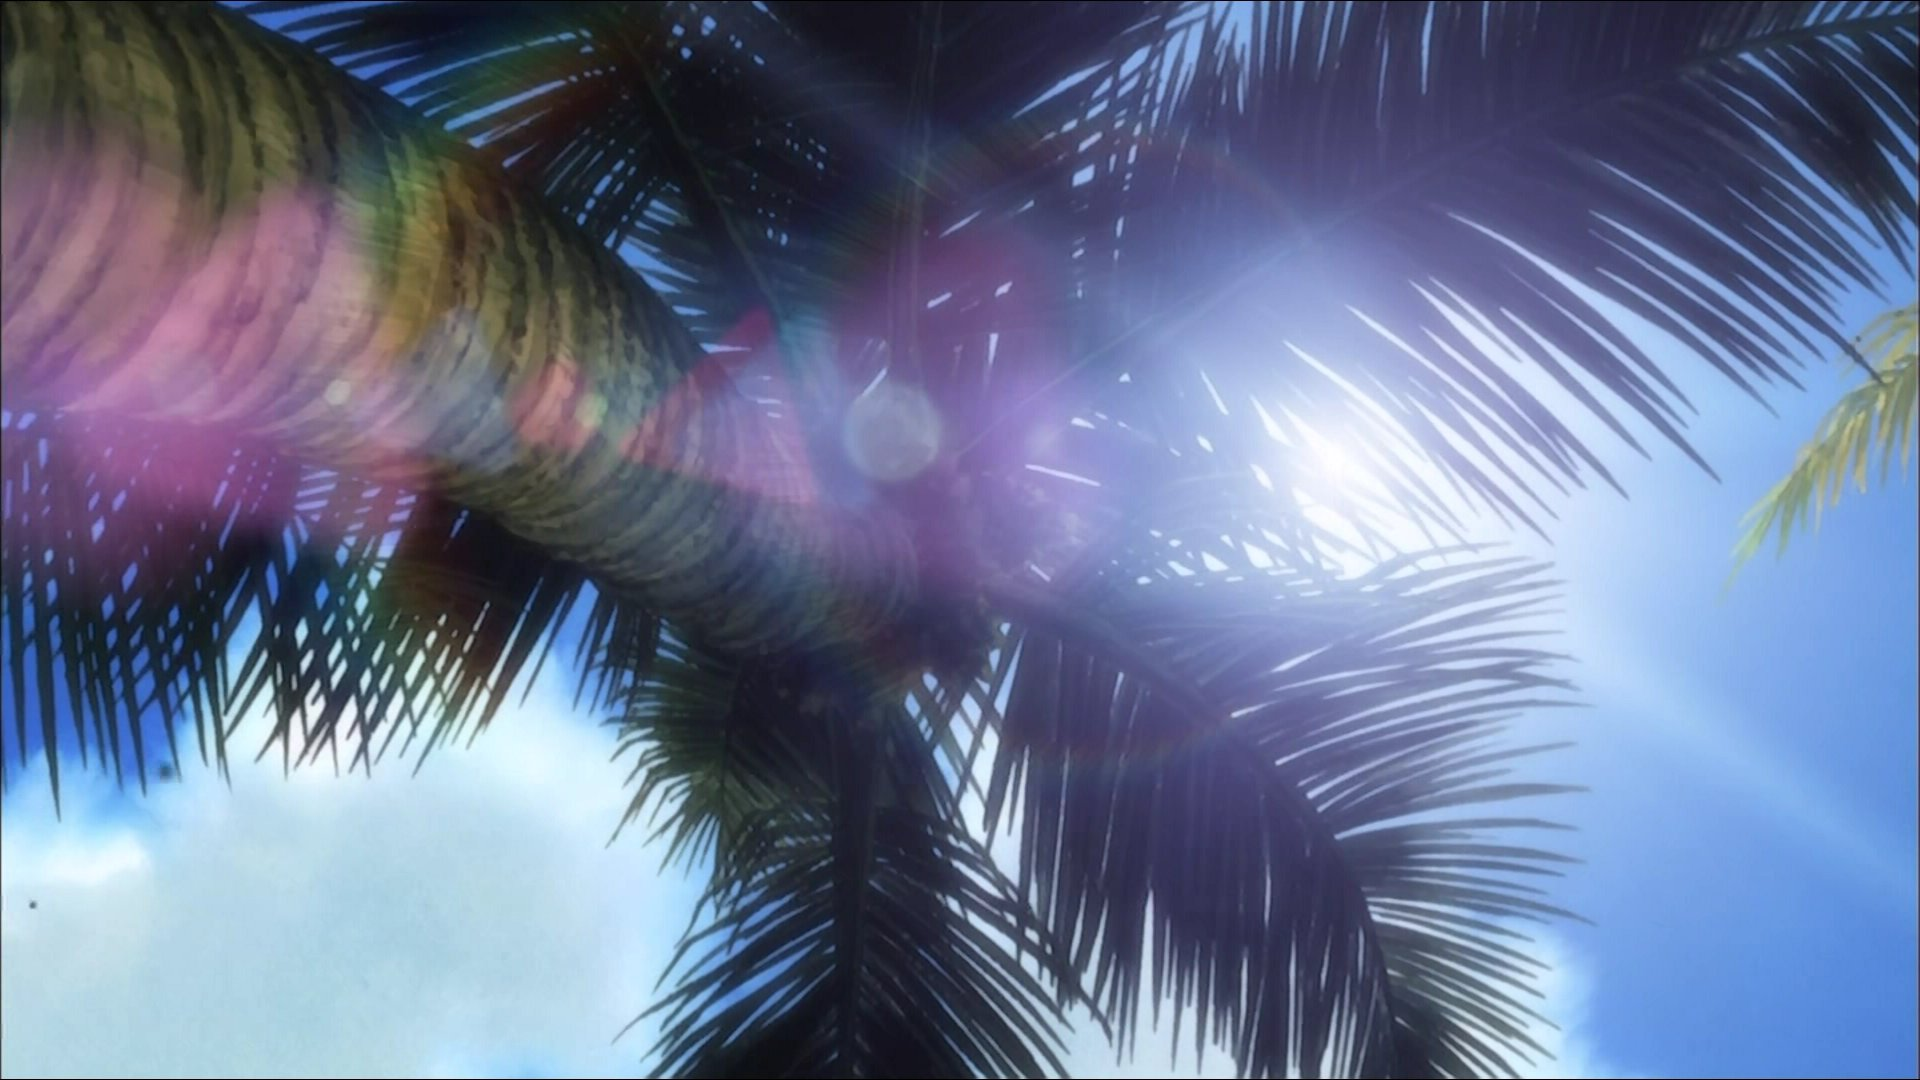 Download full hd 1080p tropical desktop wallpaper id320079 for free voltagebd Choice Image